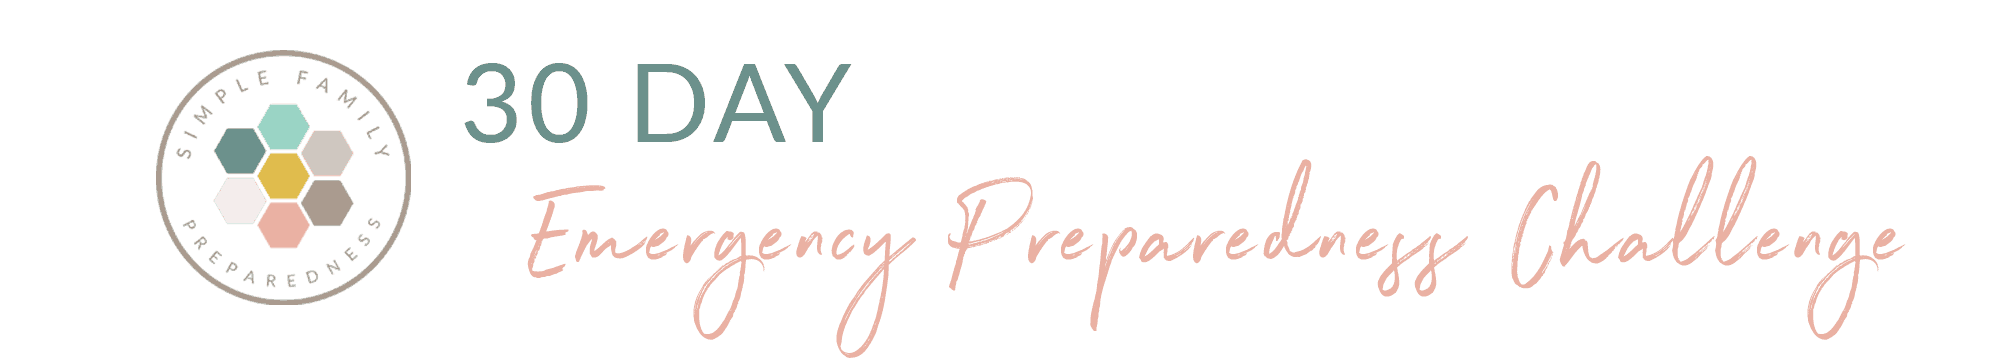 30 Day Preparedness Challenge